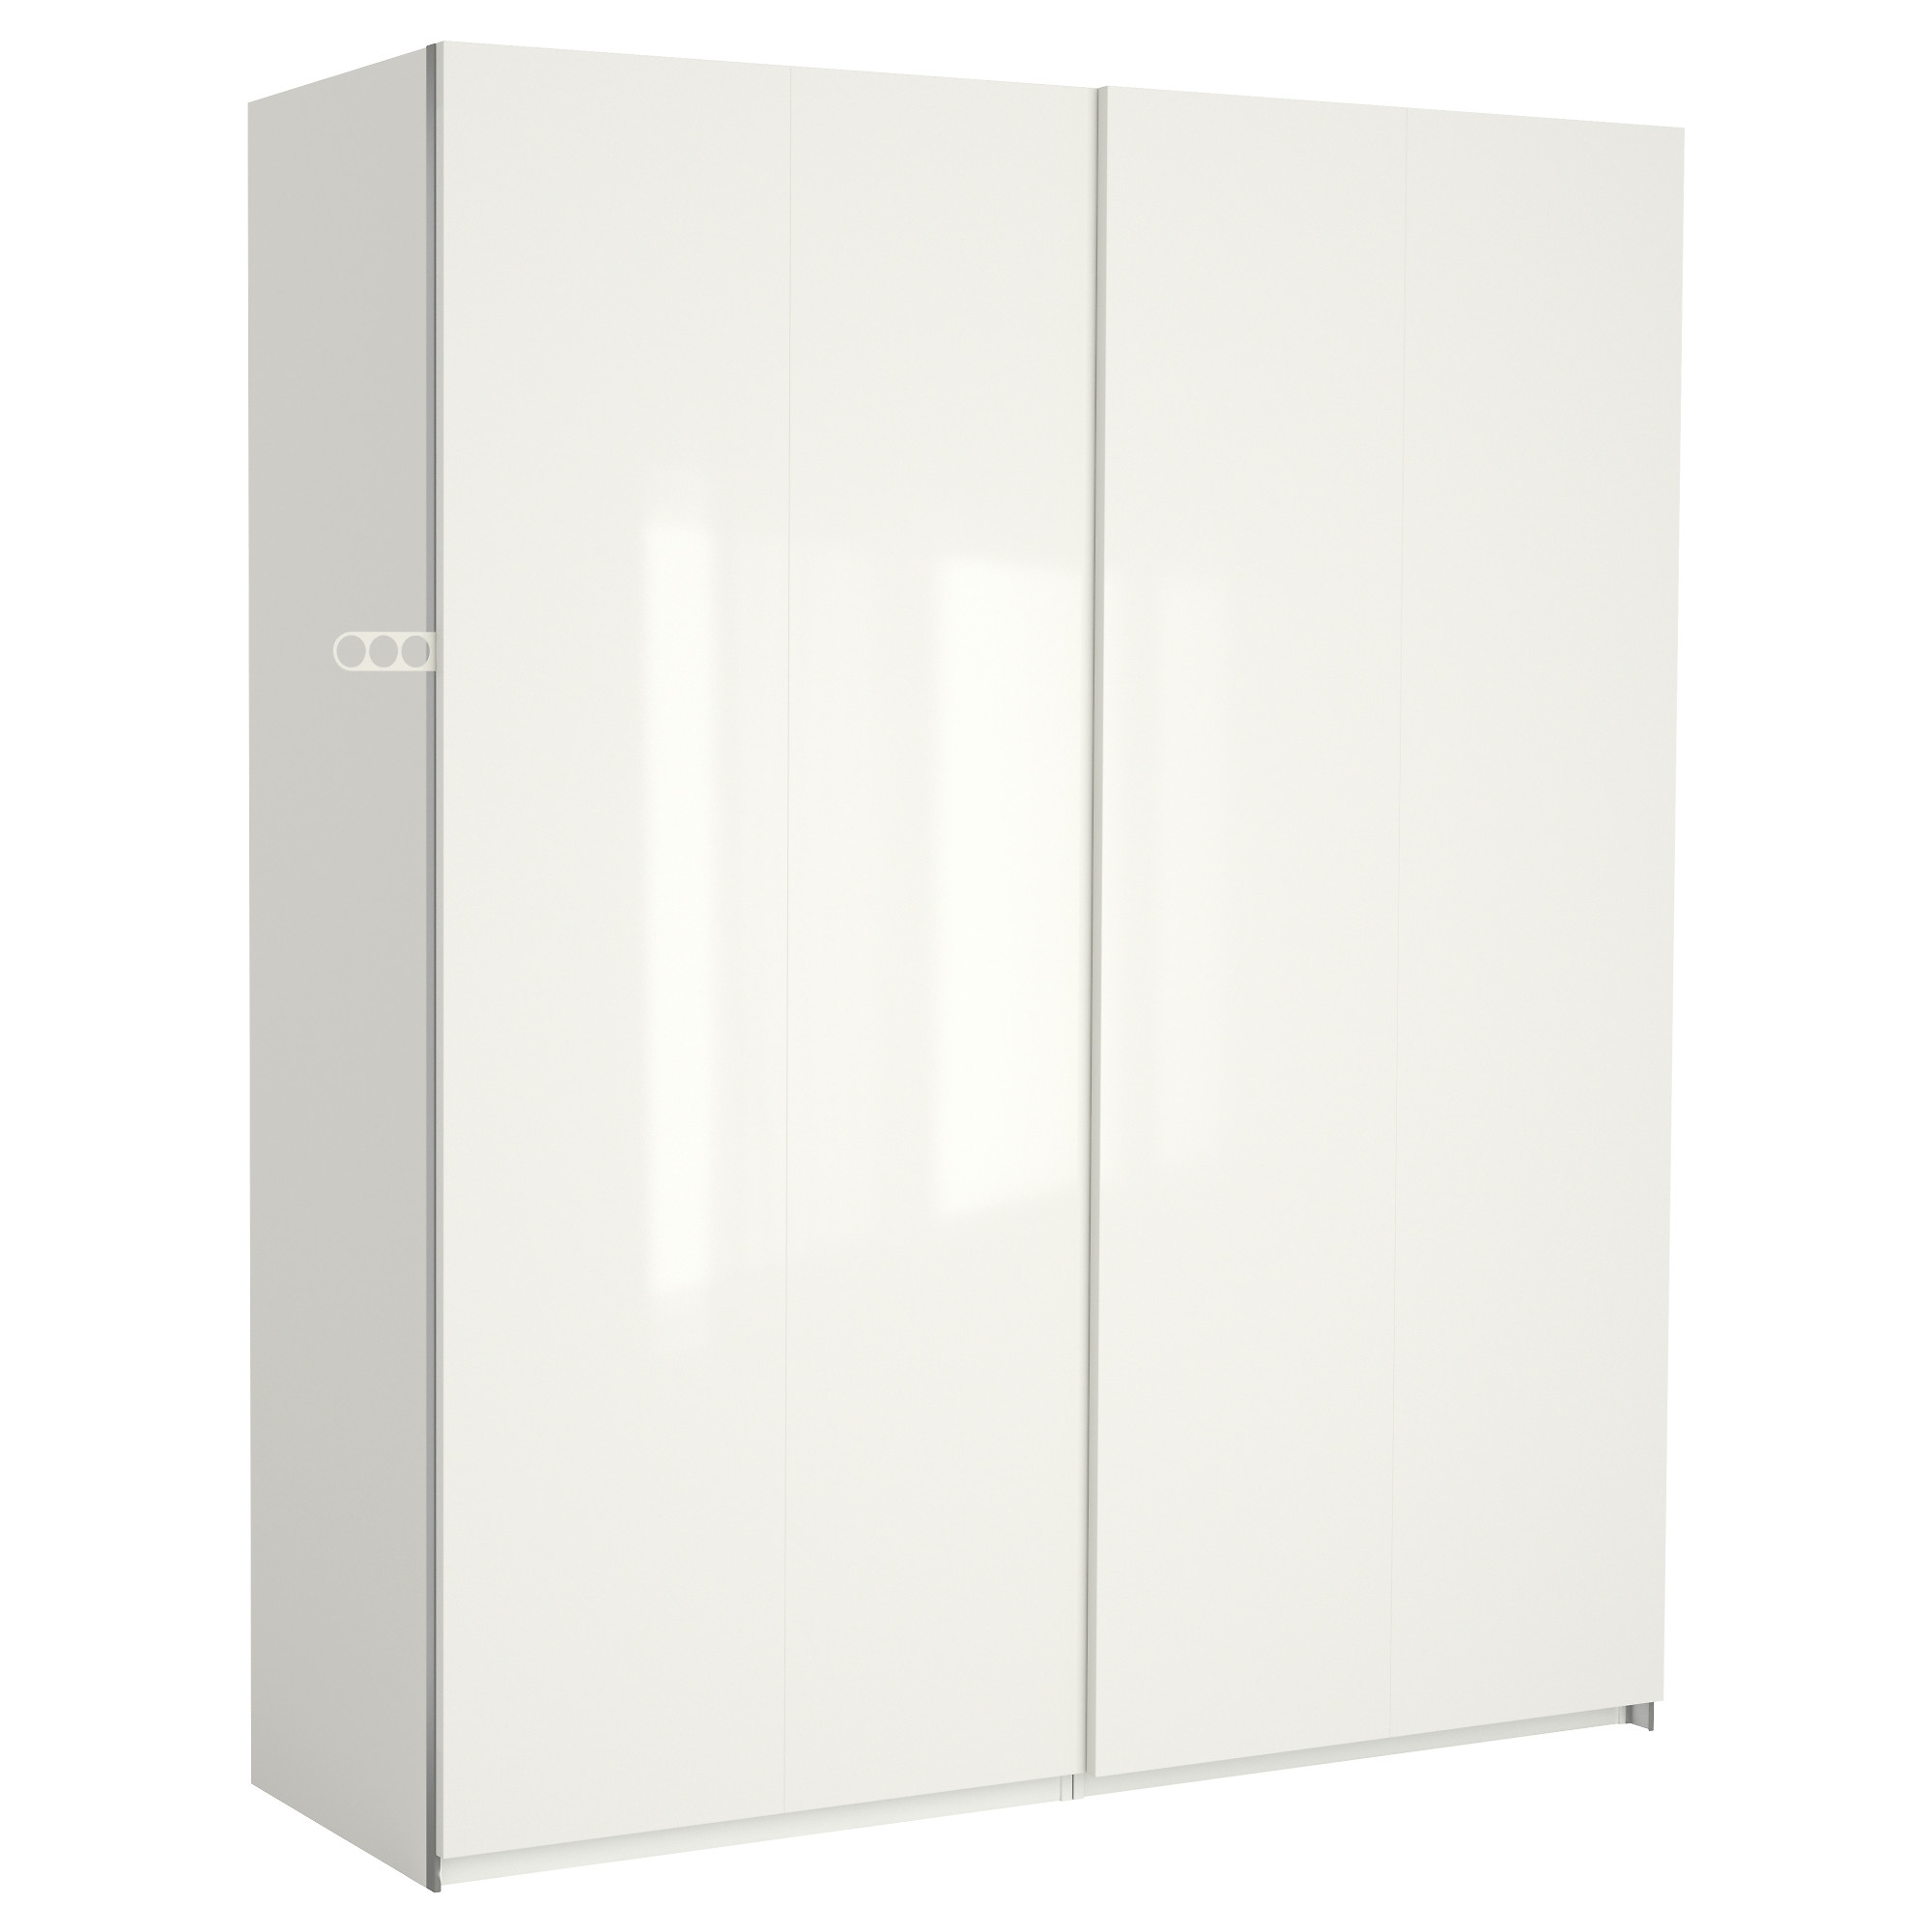 "Fashionable White Gloss Wardrobes Pertaining To Pax Wardrobe – 78 3/4x26x79 1/4 "" – Ikea (View 4 of 15)"